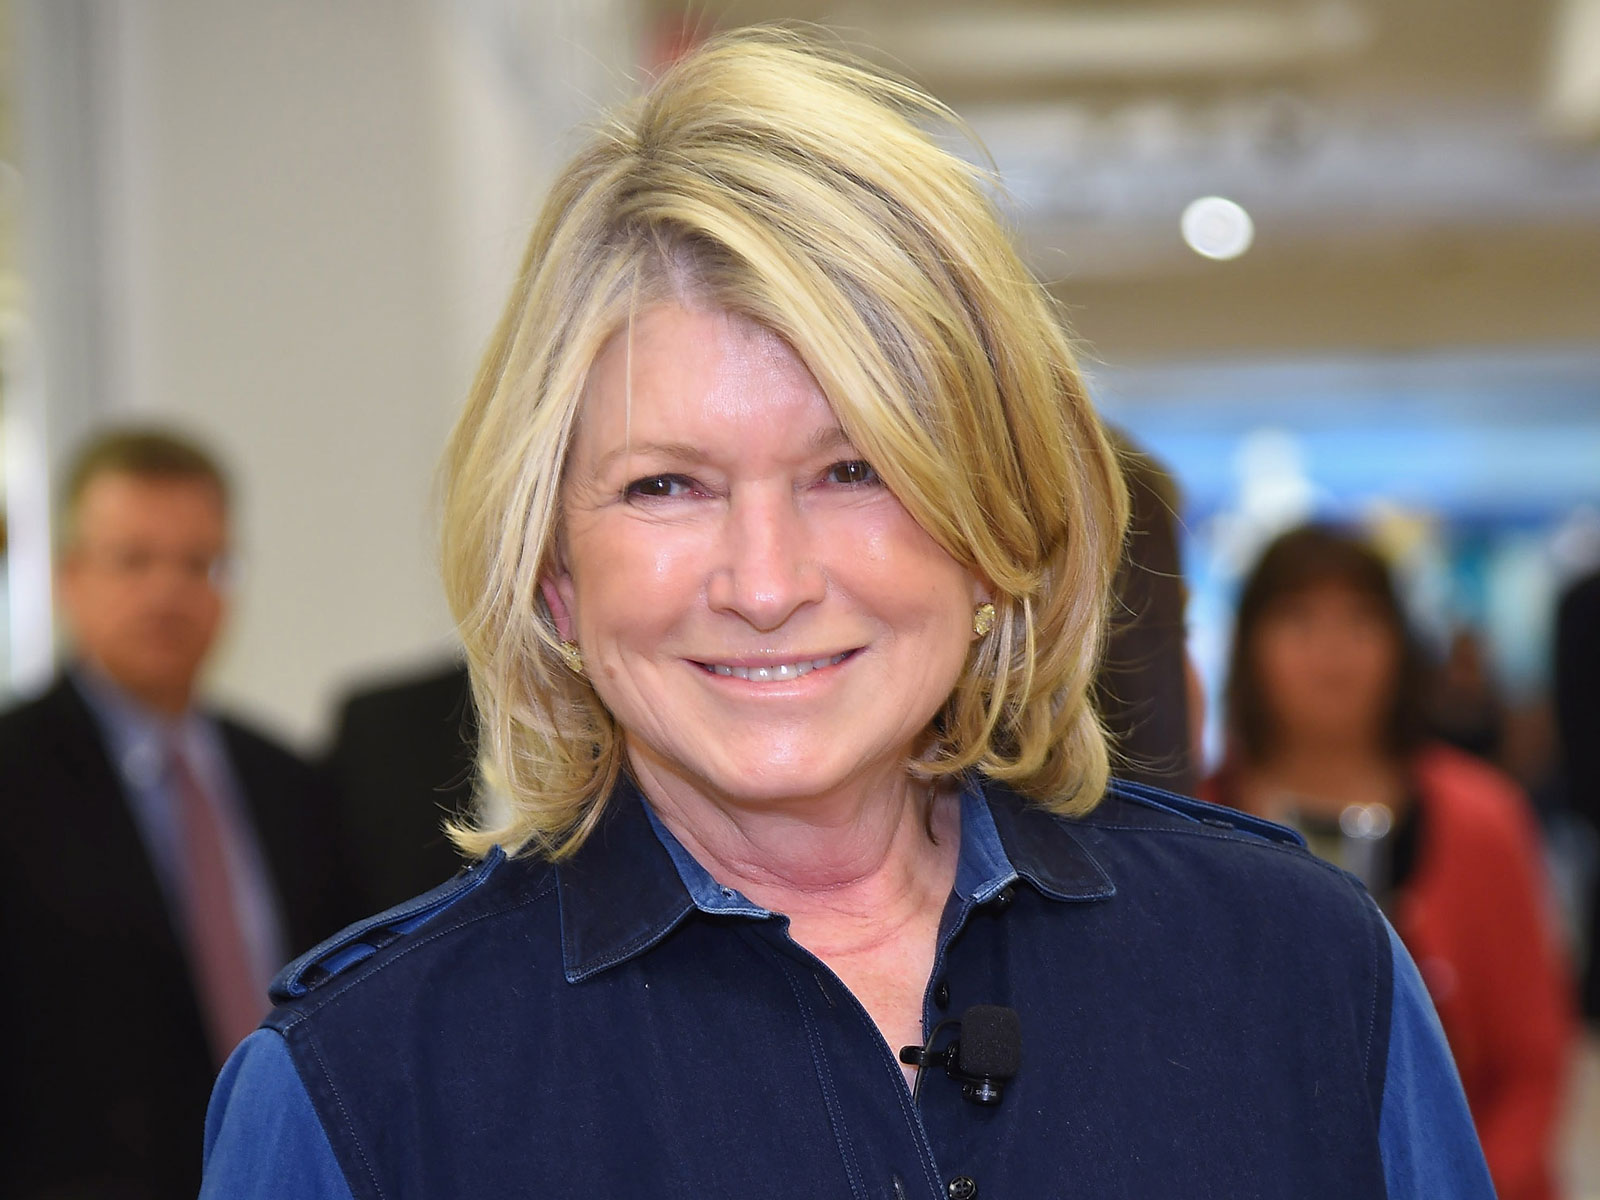 martha-stewart-show-auction-FT-BLOG0418.jpg